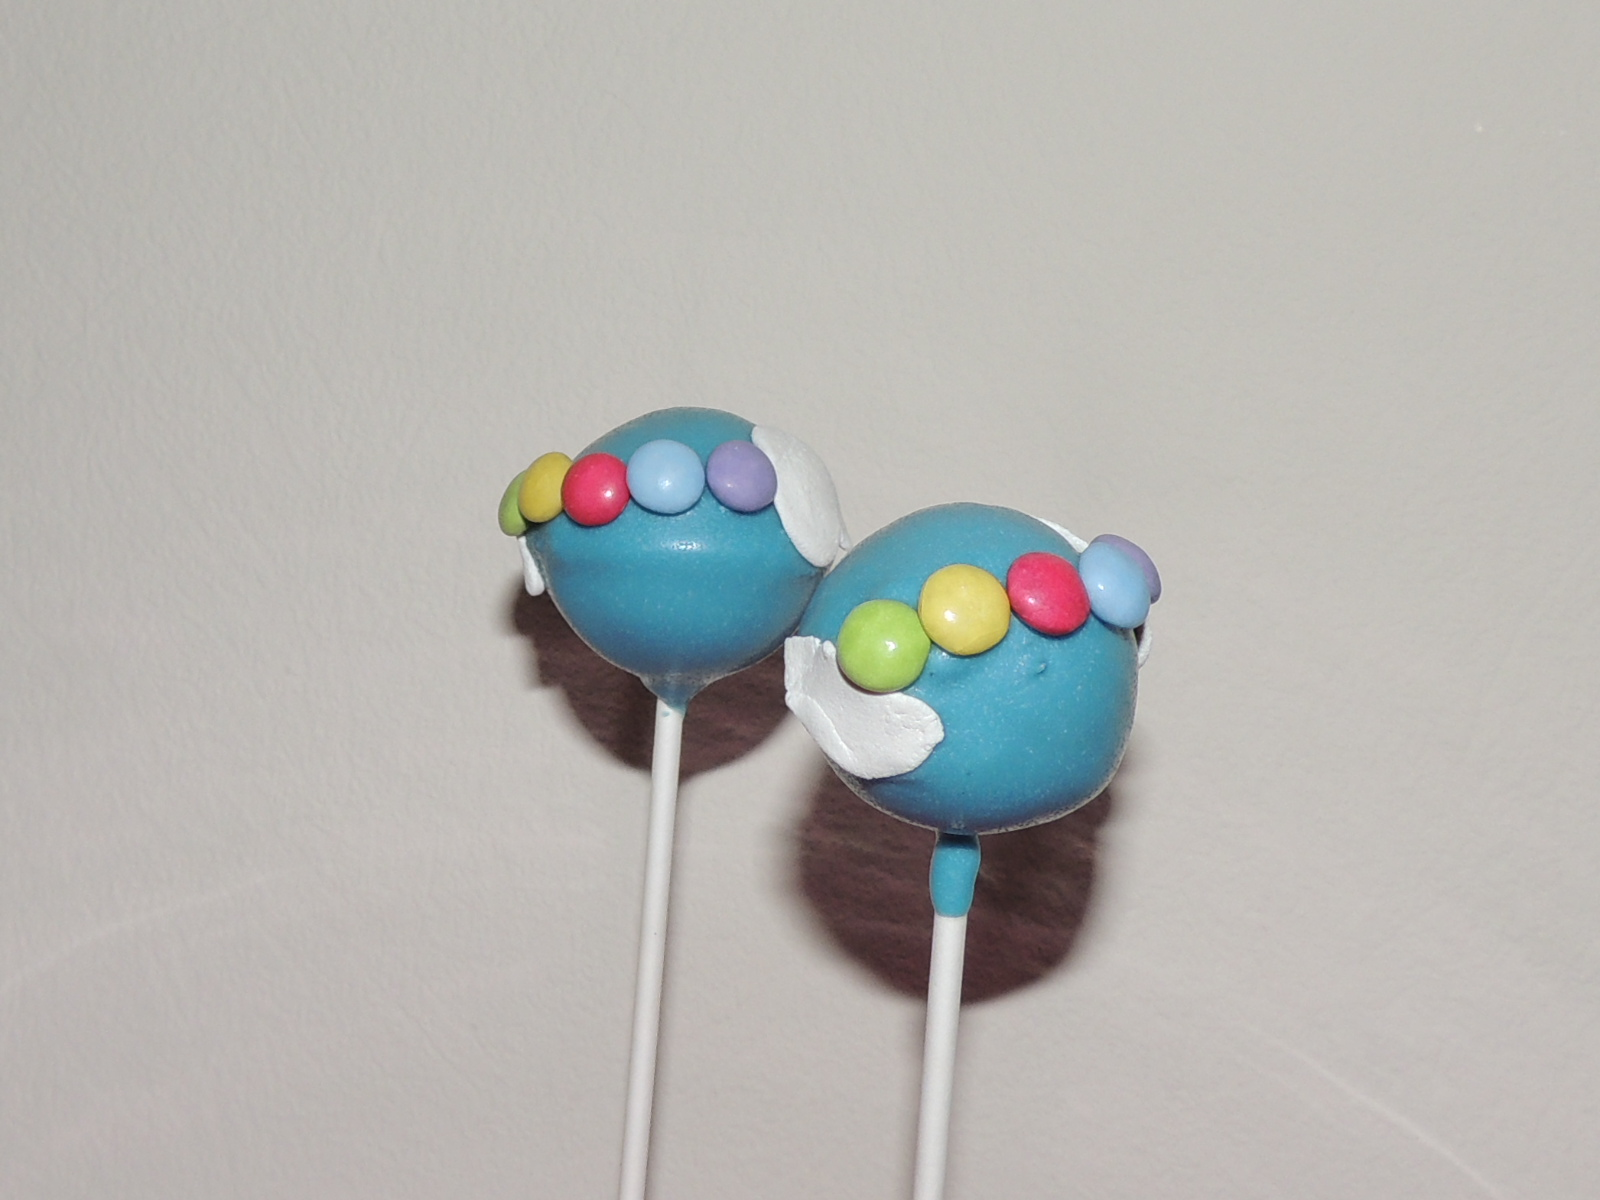 Cake pop till you drop...